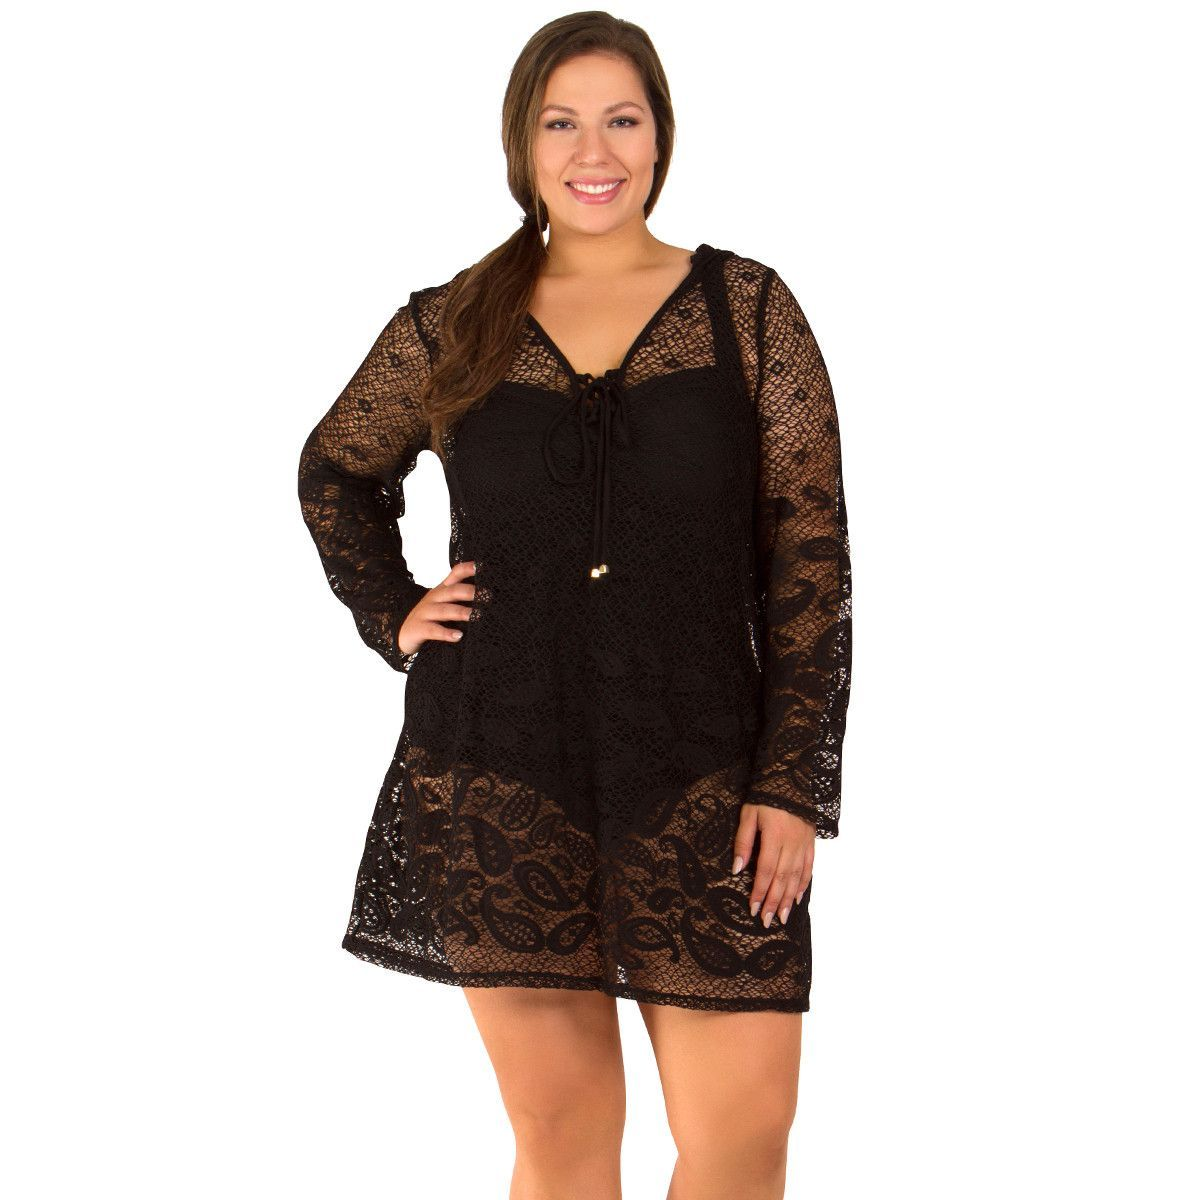 4591f6187c Flattering Plus Size Coverup by Dotti